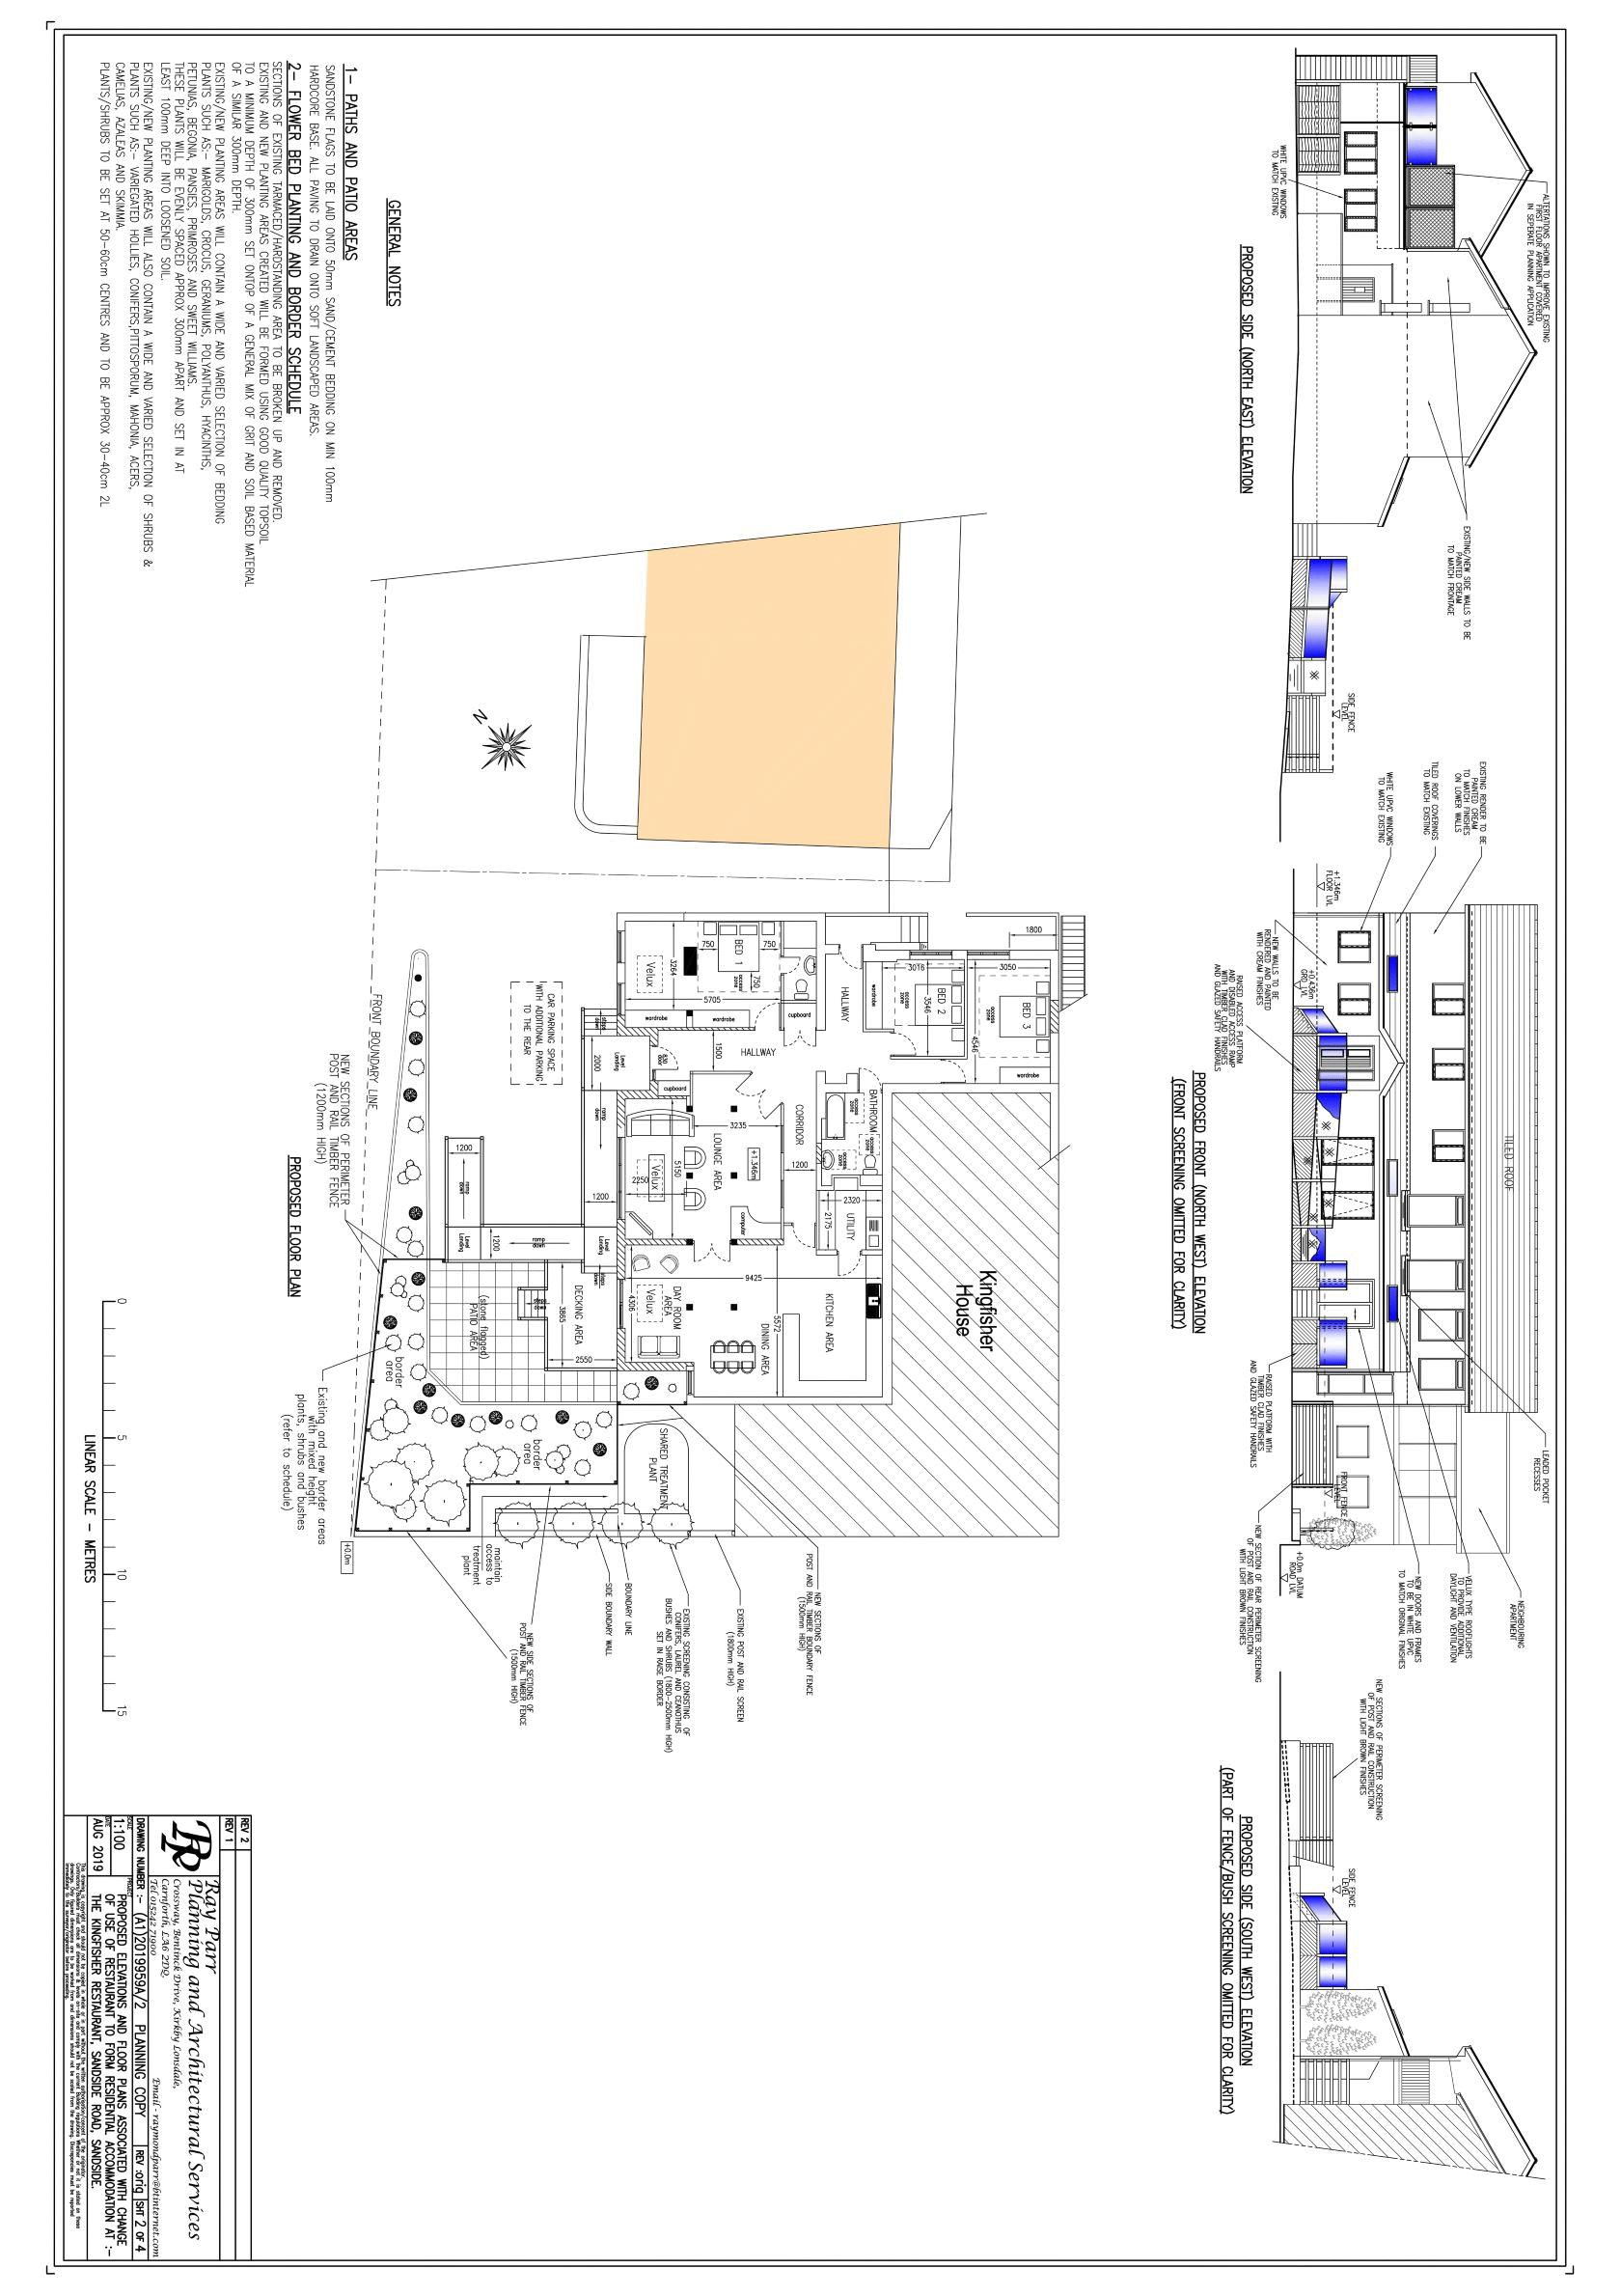 Proposed Restaurant Layout